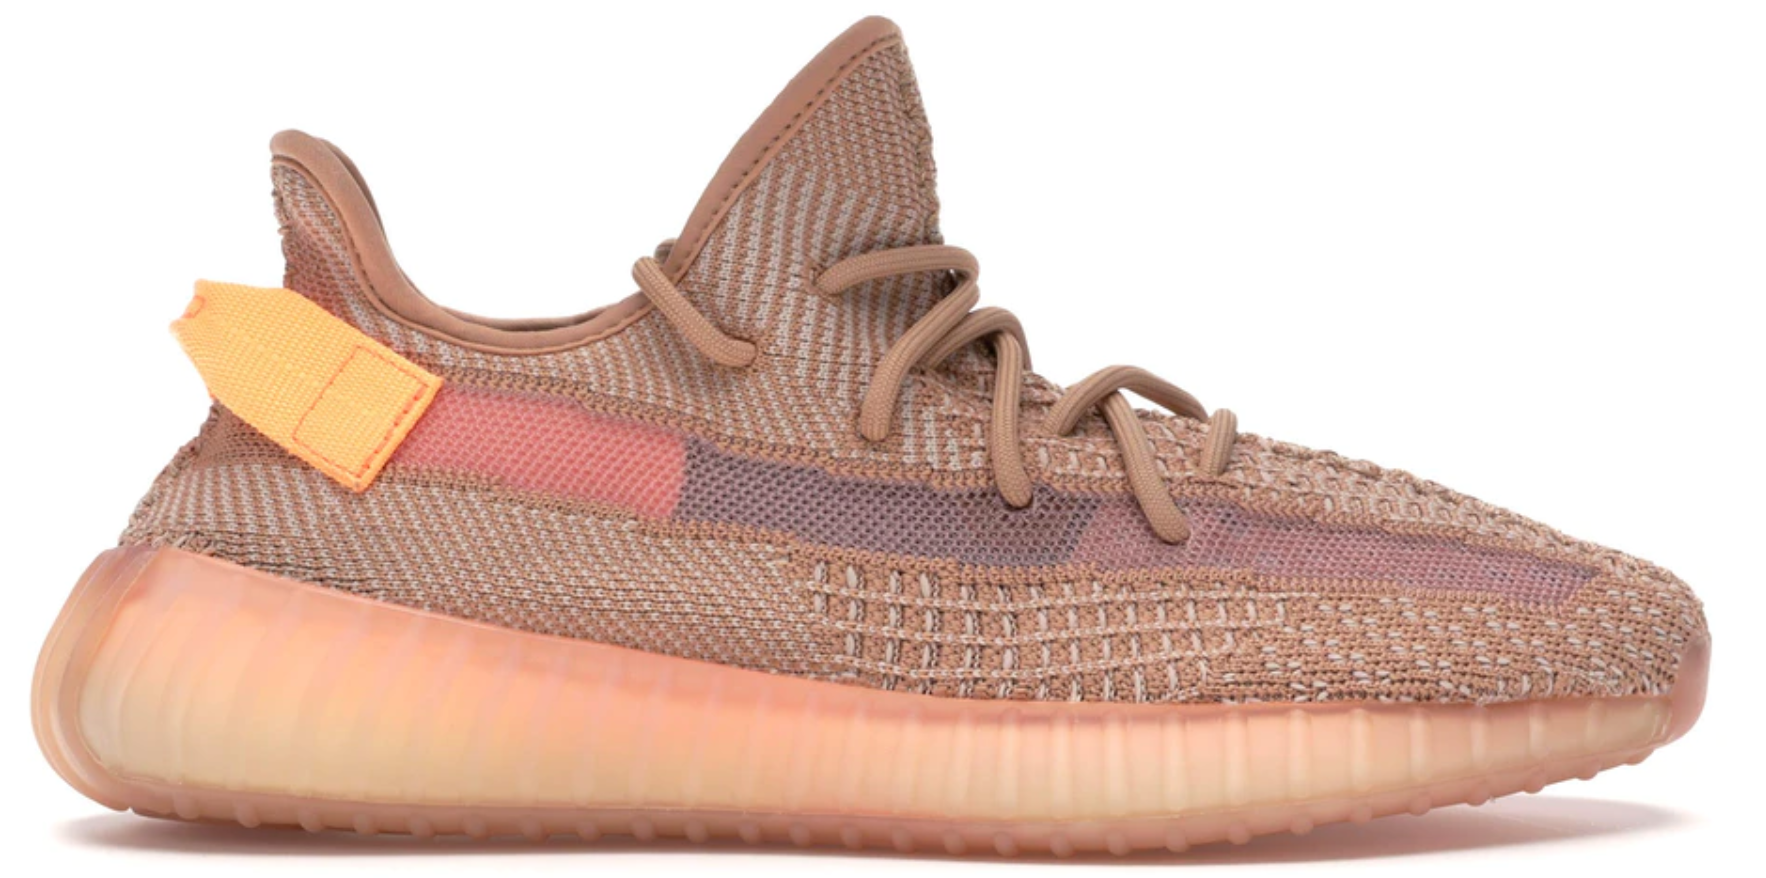 YEEZY BOOST 350 V2 CLAY | The Edit Man